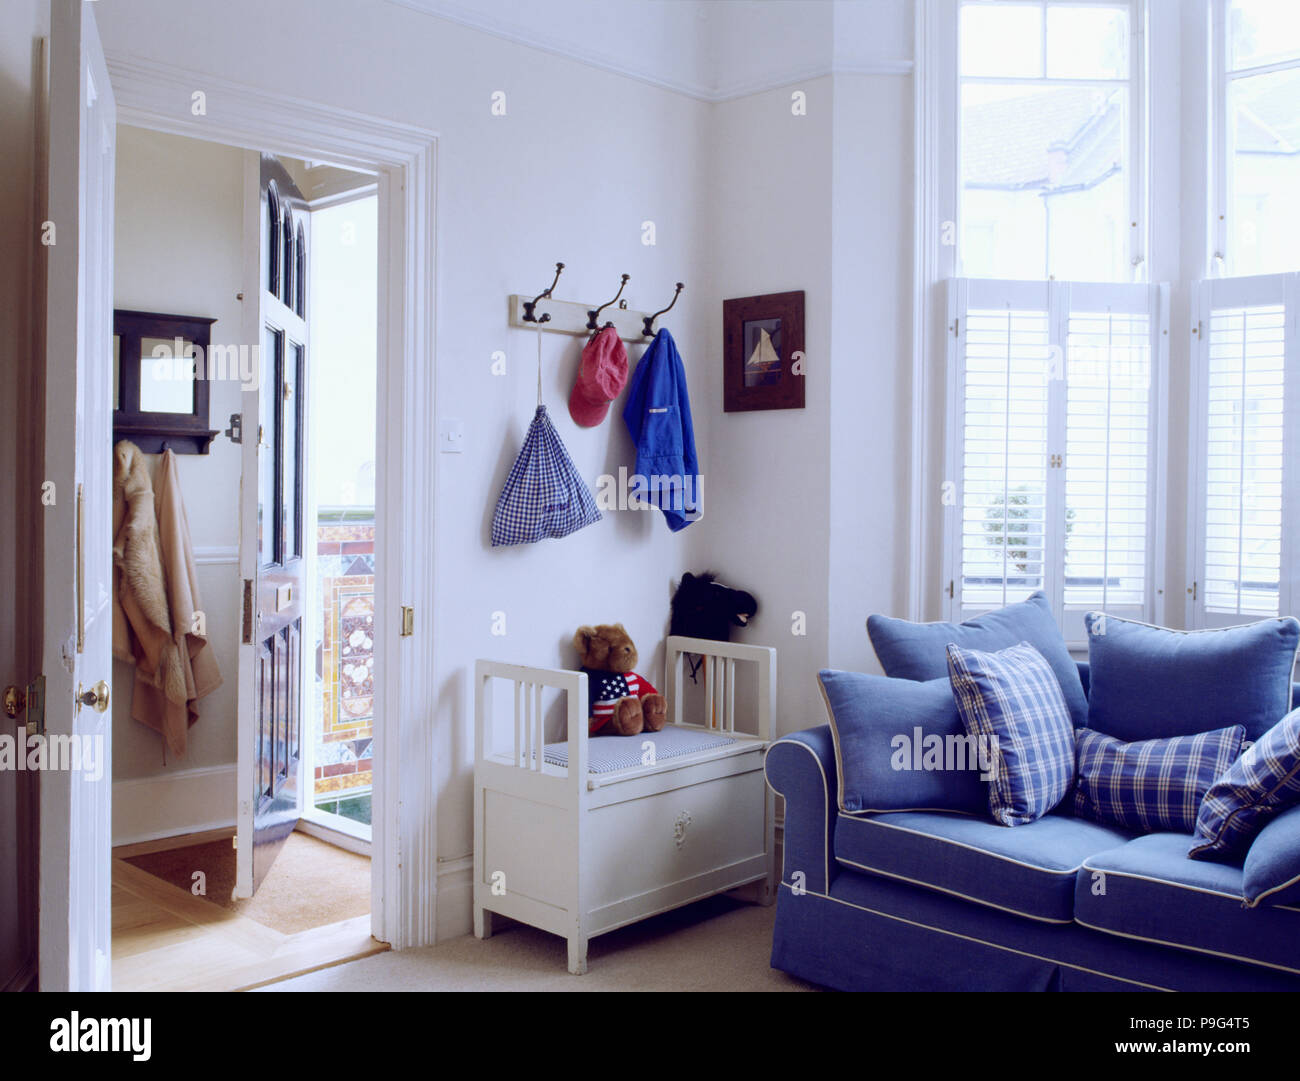 Blue Sofa And White Toys Chest In Family Living Room With